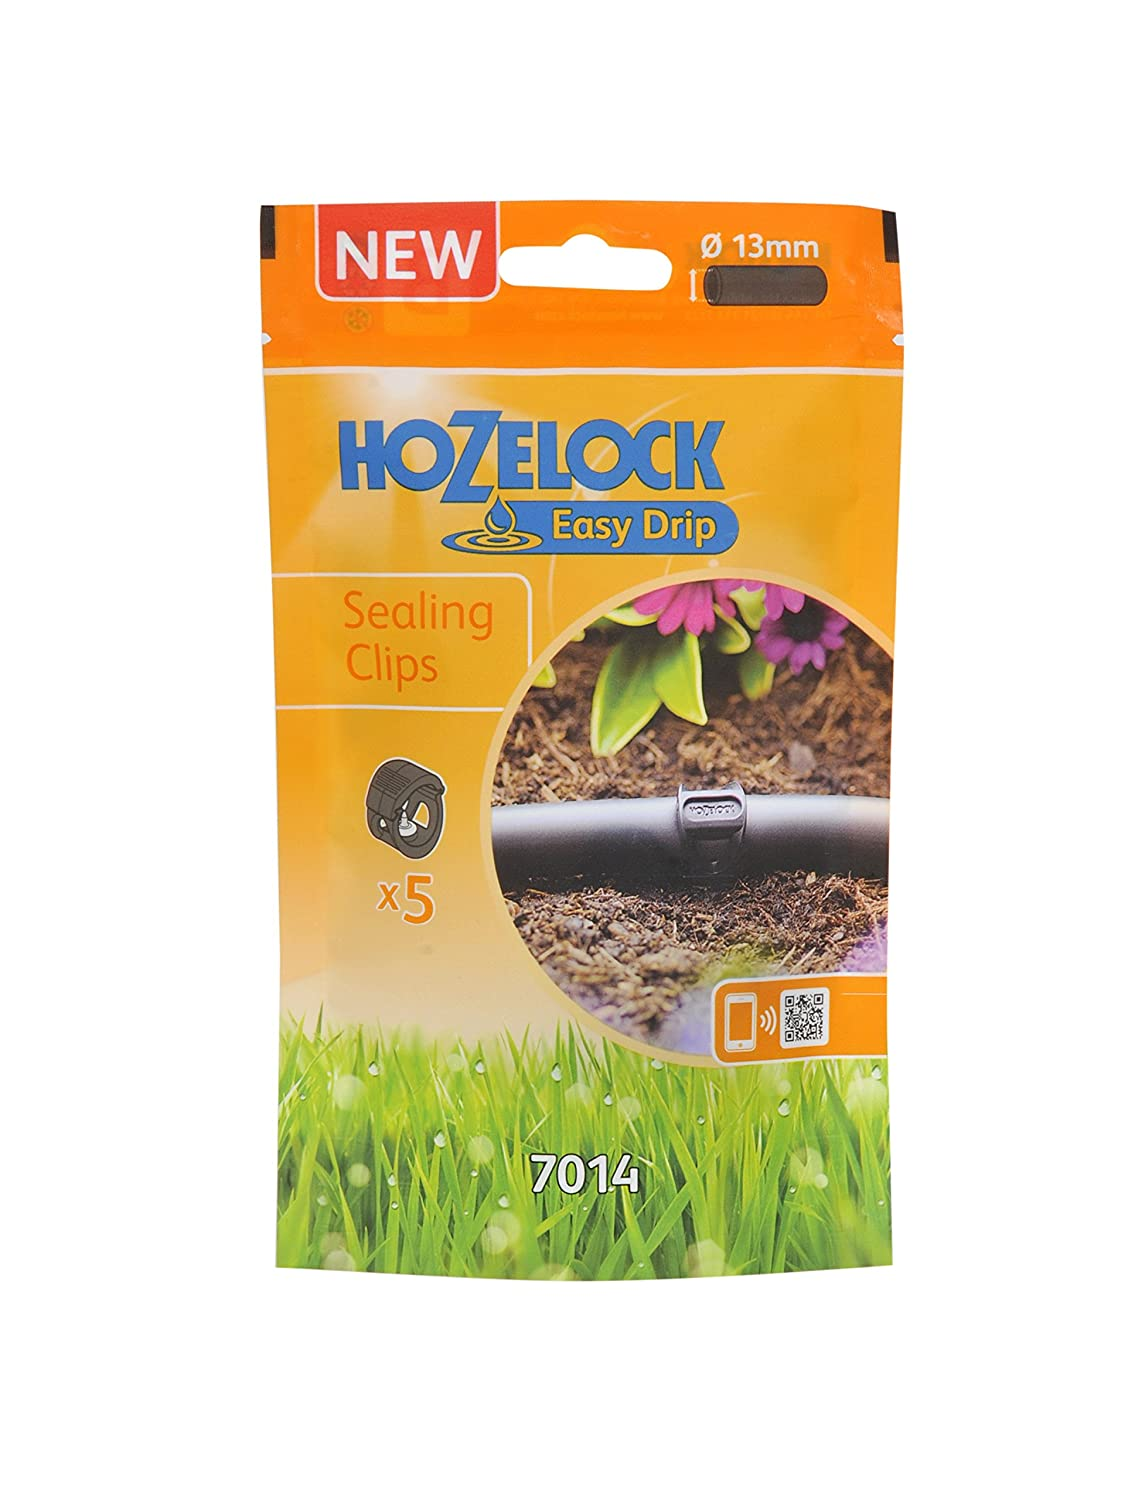 Hozelock Water Irrigation Easy Drip Sealing Clip Pack of 5